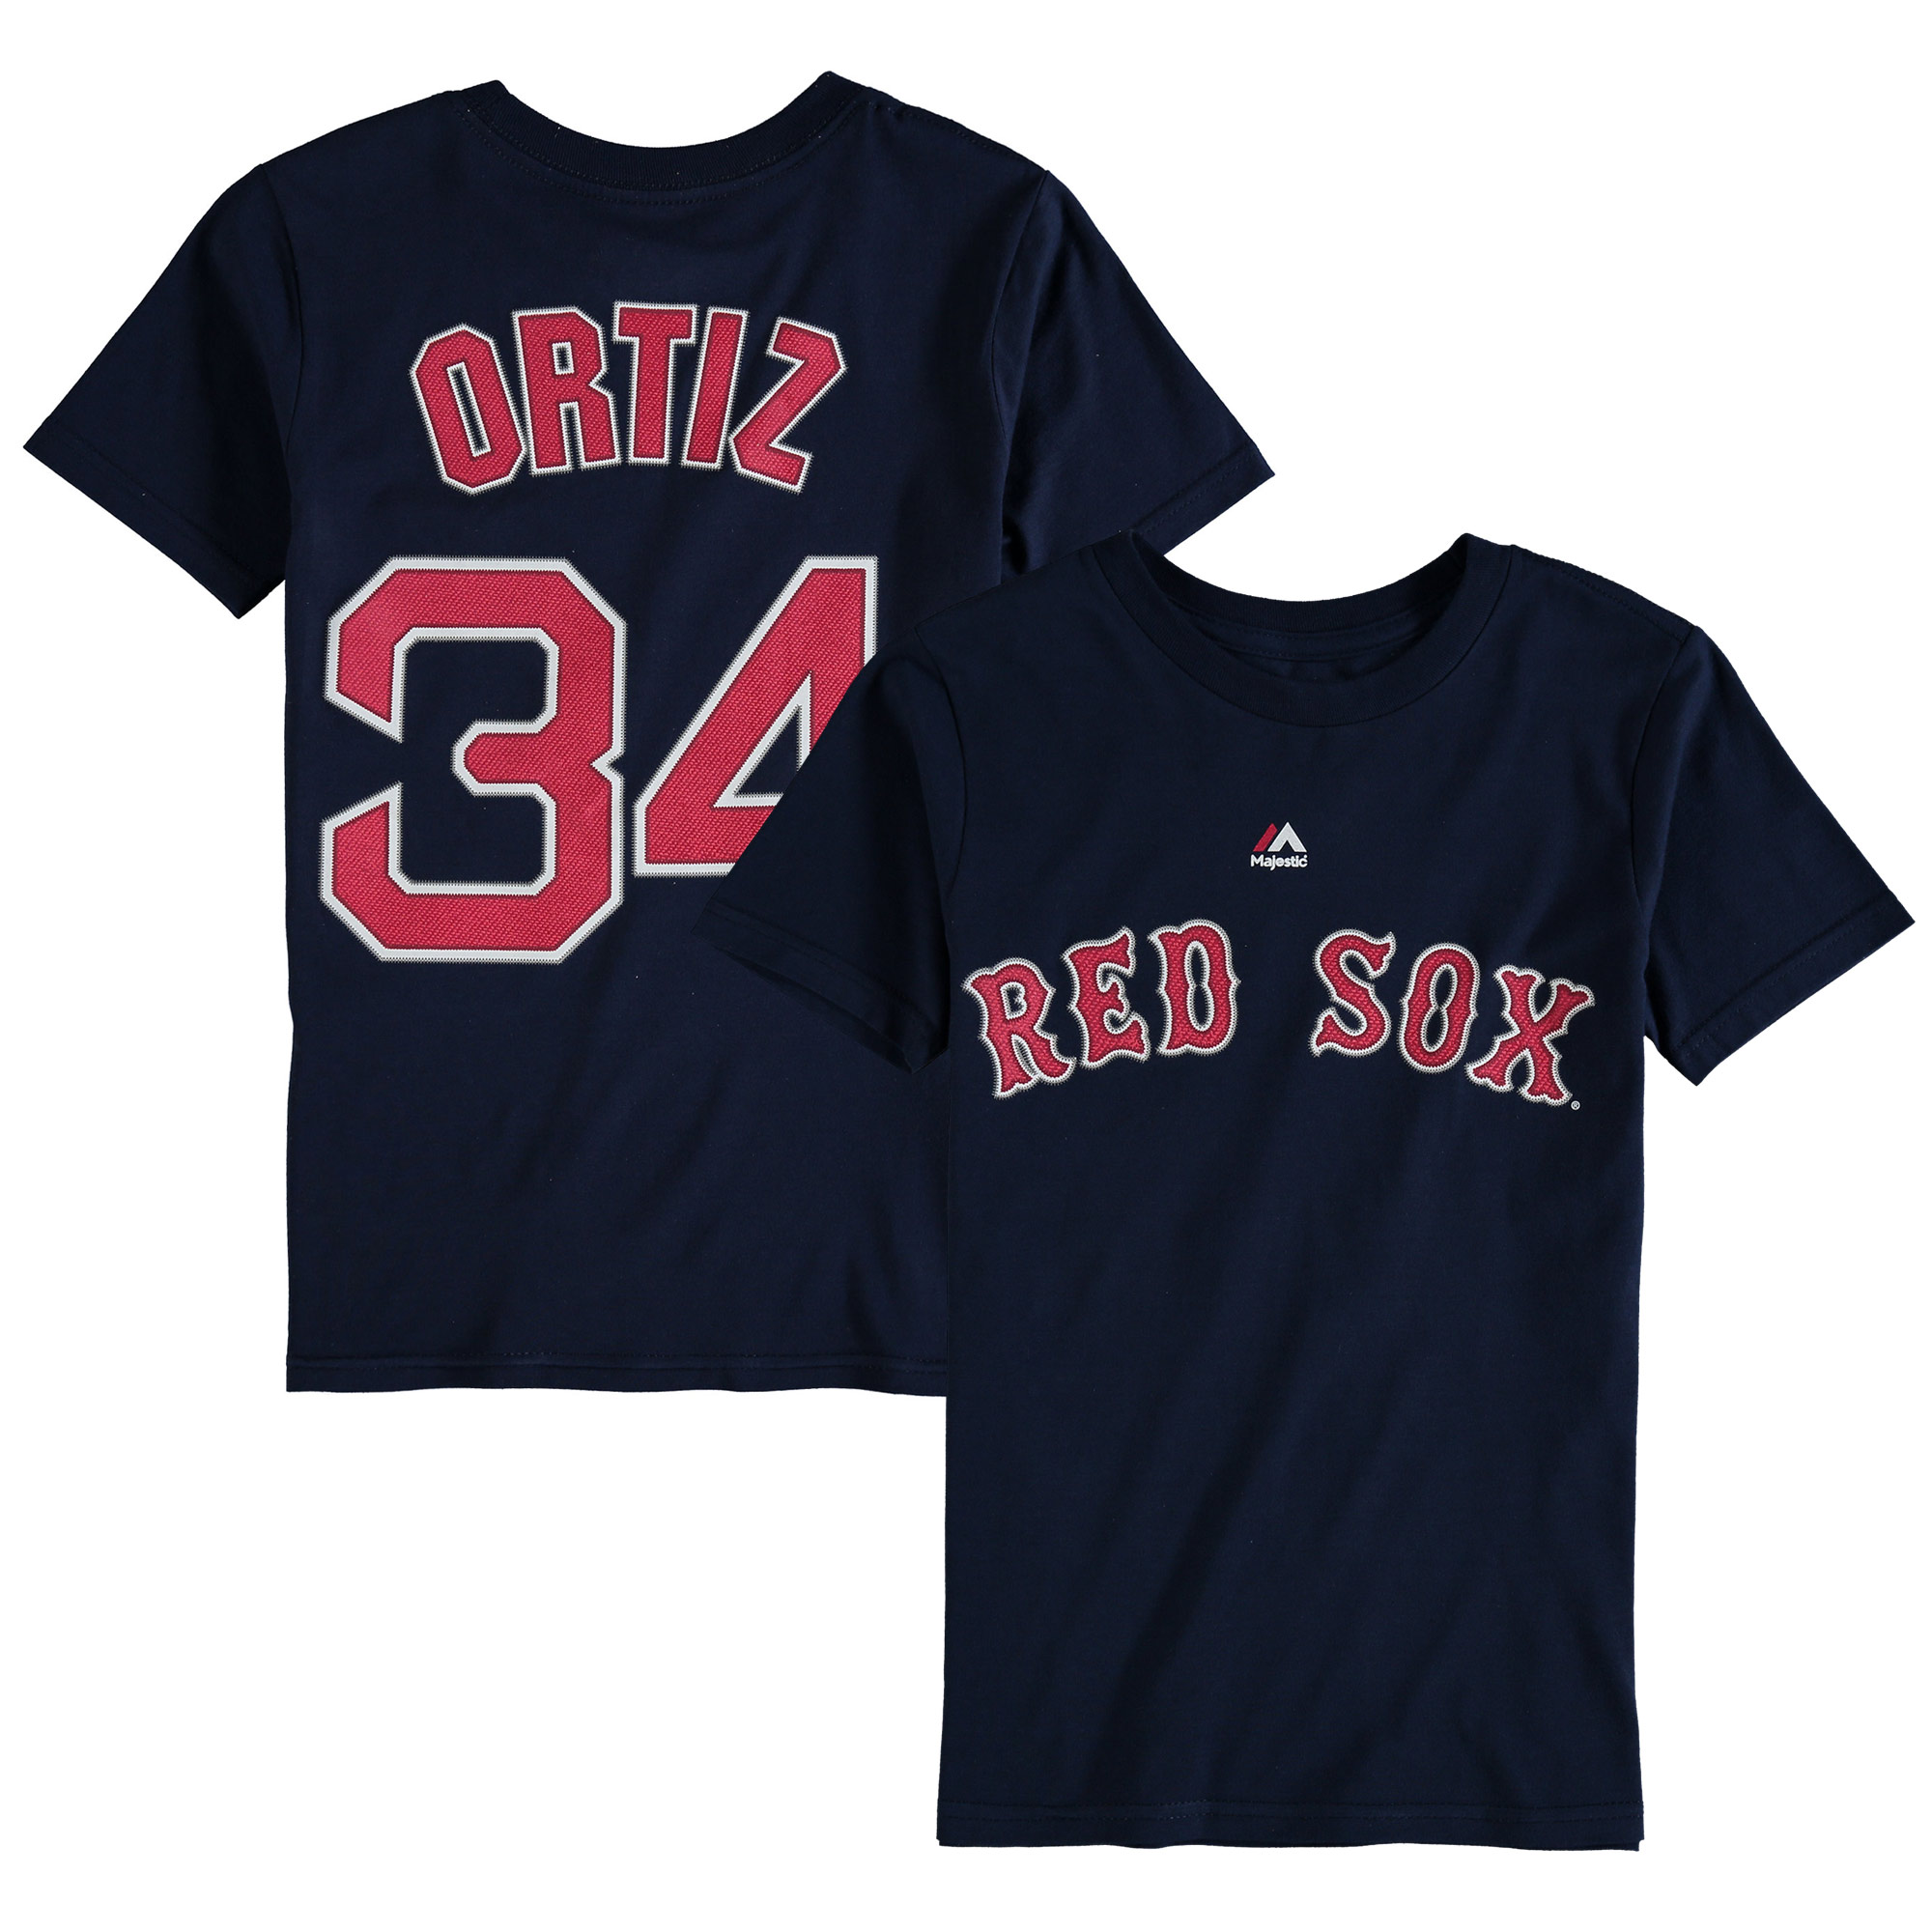 david ortiz boston red sox majestic youth player name & number t-shirt - navy